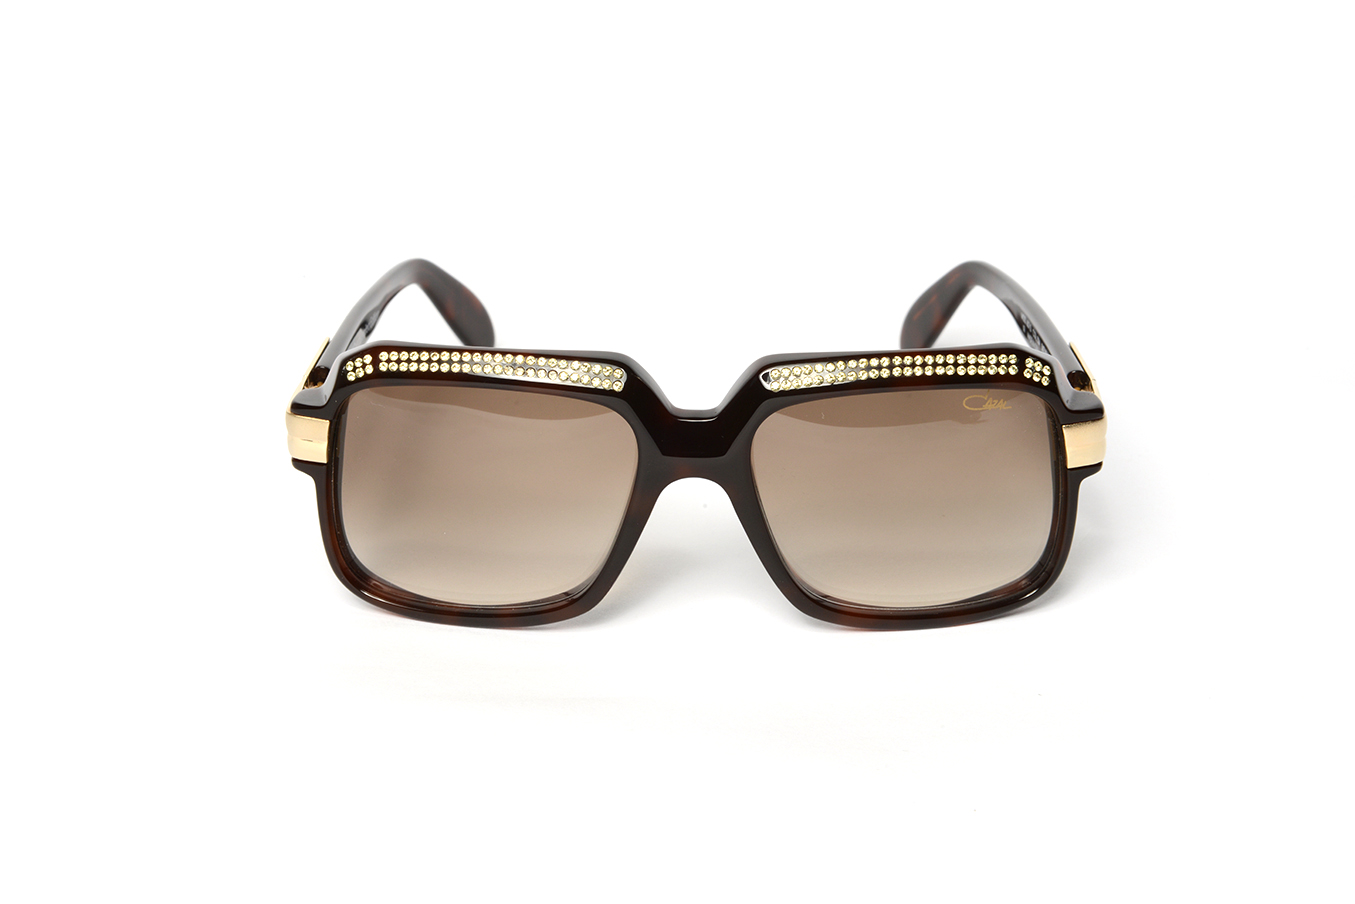 cazal 607 limited edition piccadilly opticians